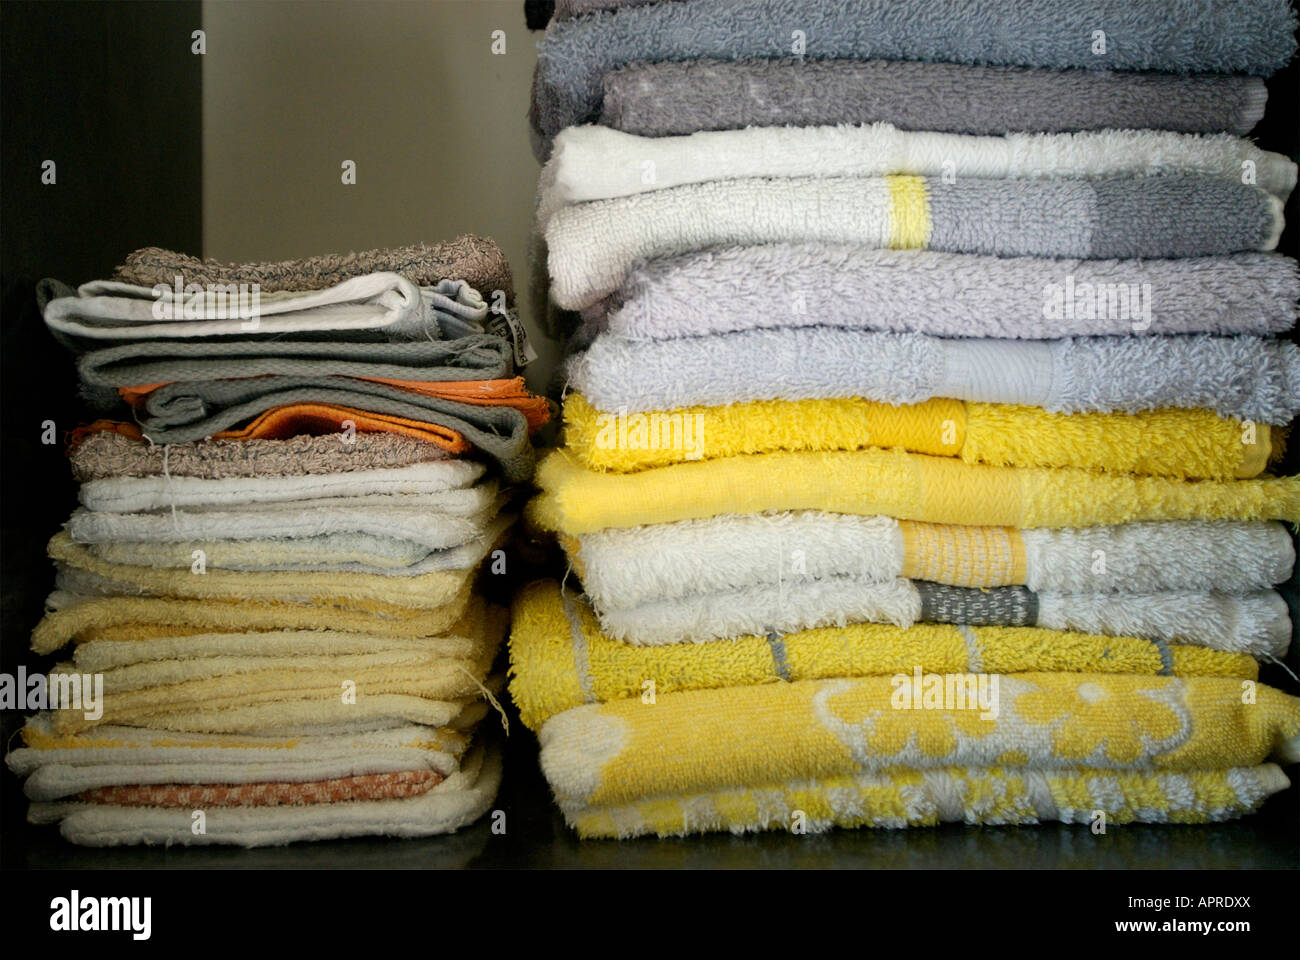 Towels and facecloths folded on a bathroom shelf - Stock Image